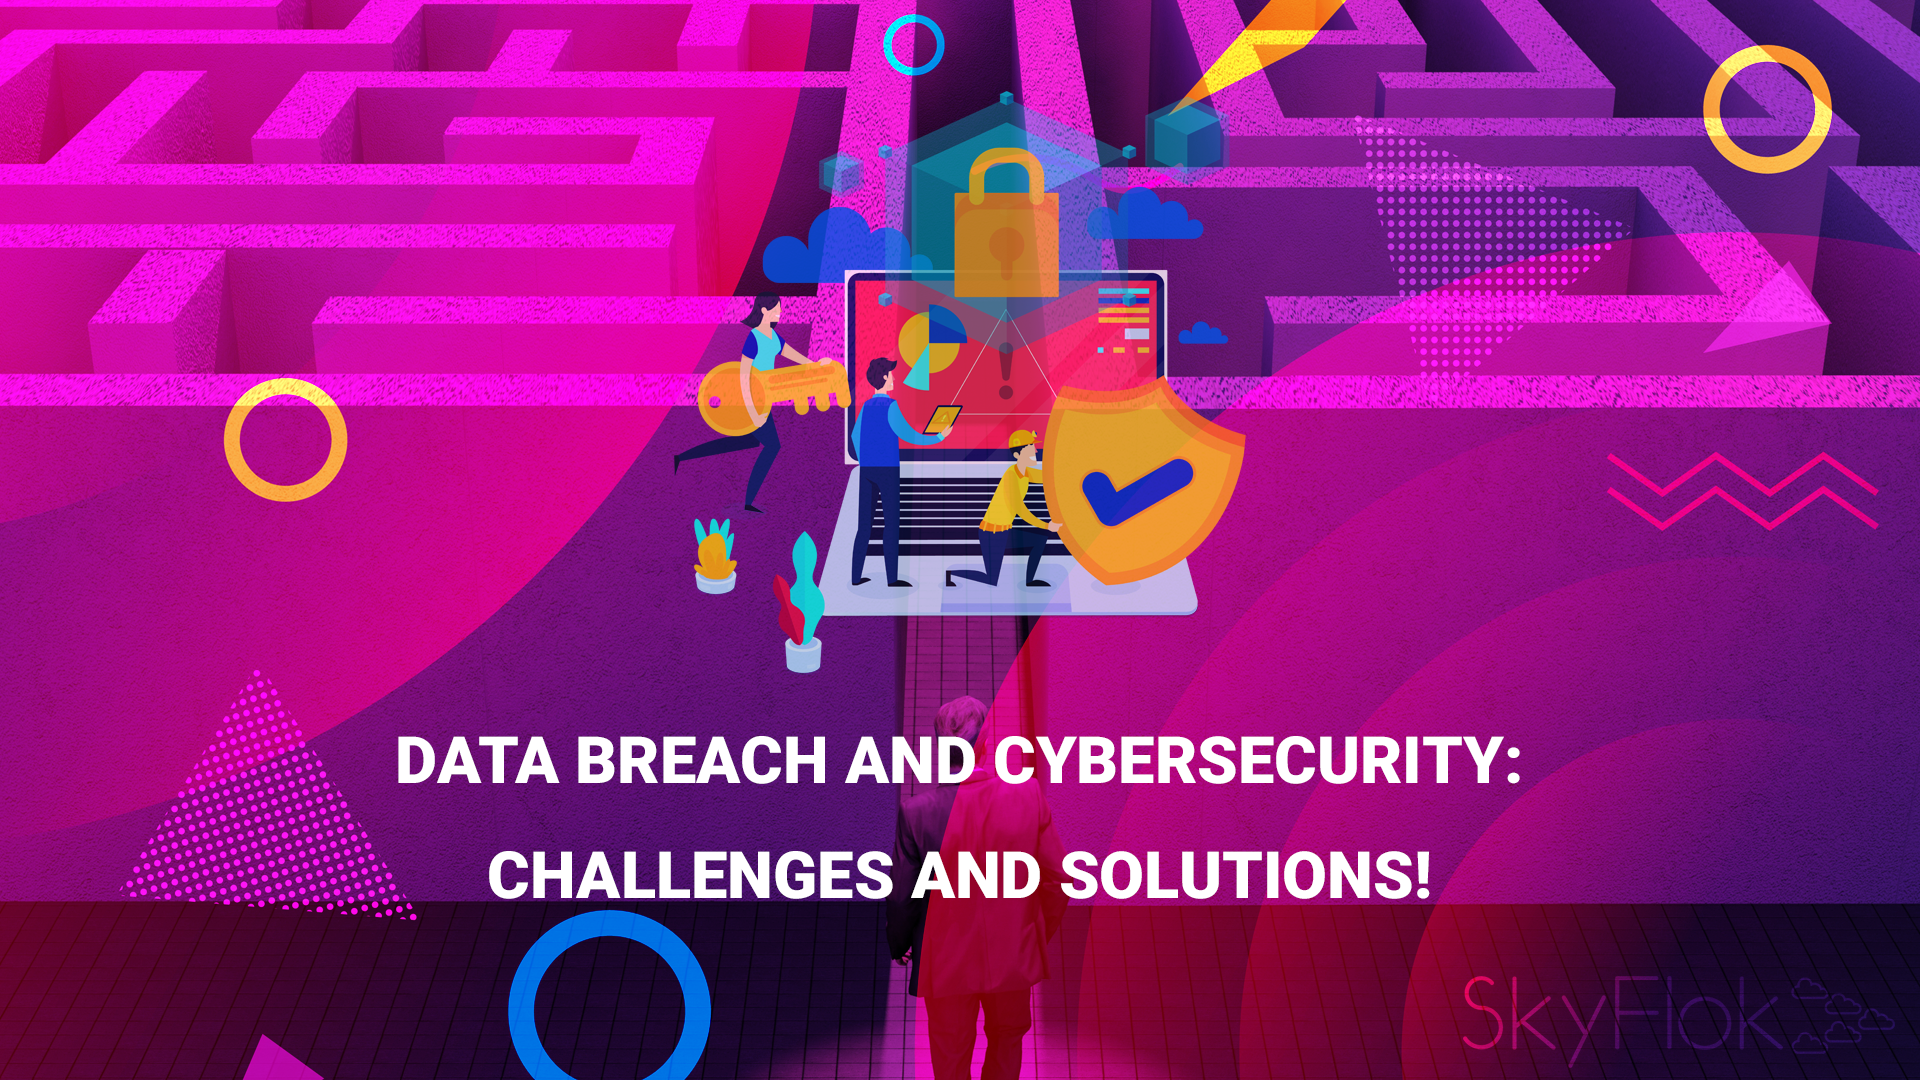 Data breach and cybersecurity: Challenges and solutions!